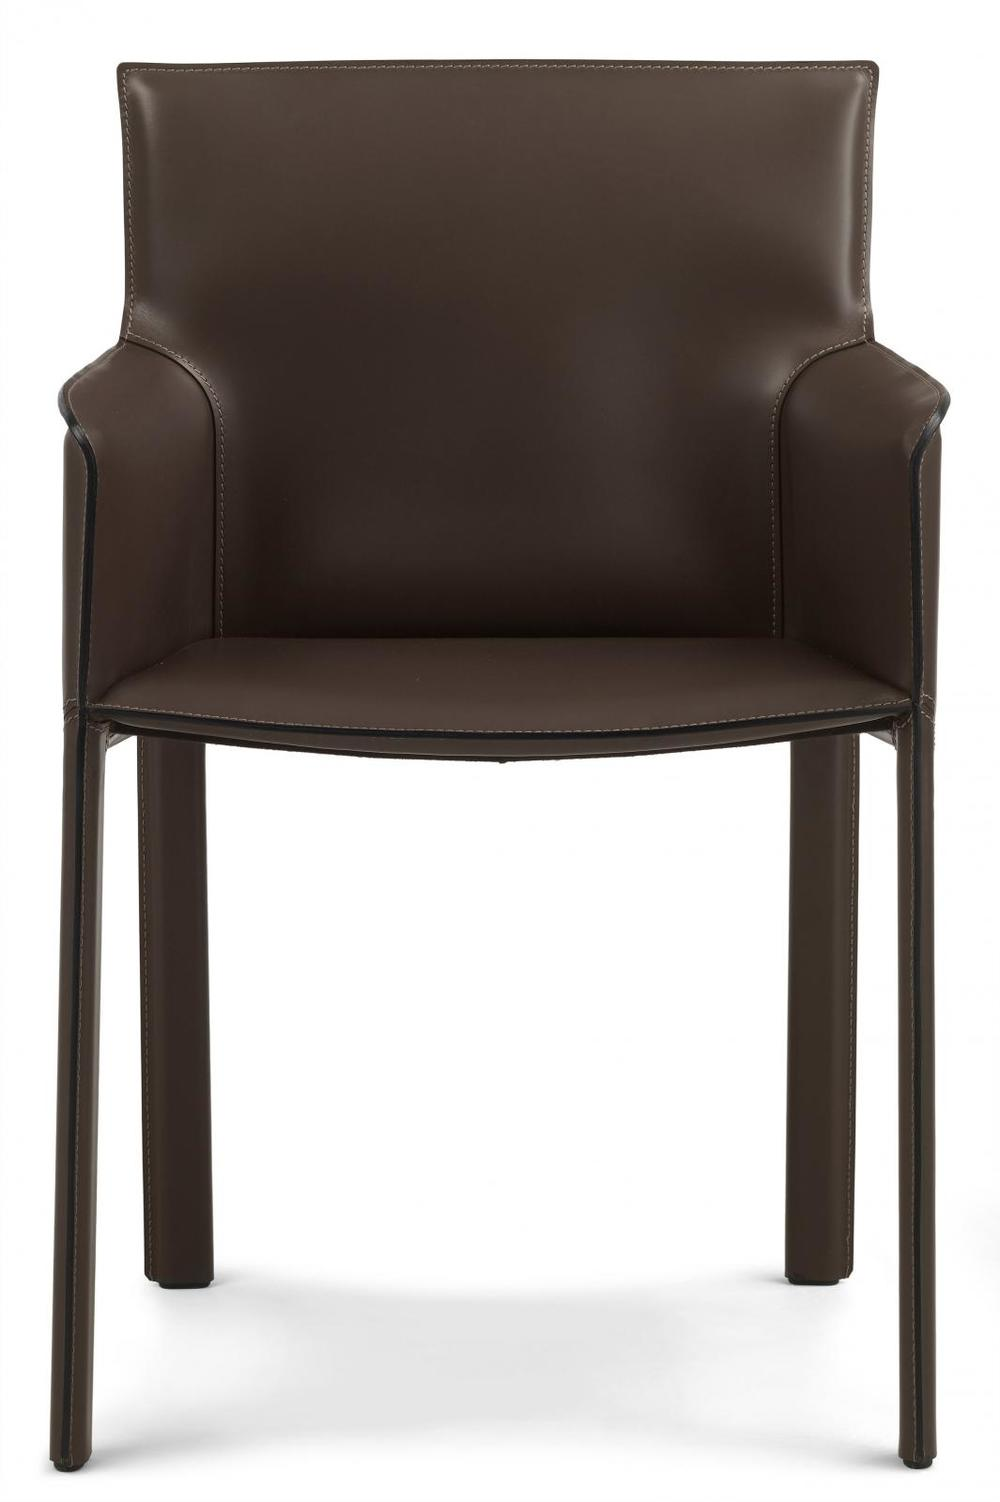 modern-leather-chairs-italian-furniture (15).jpg